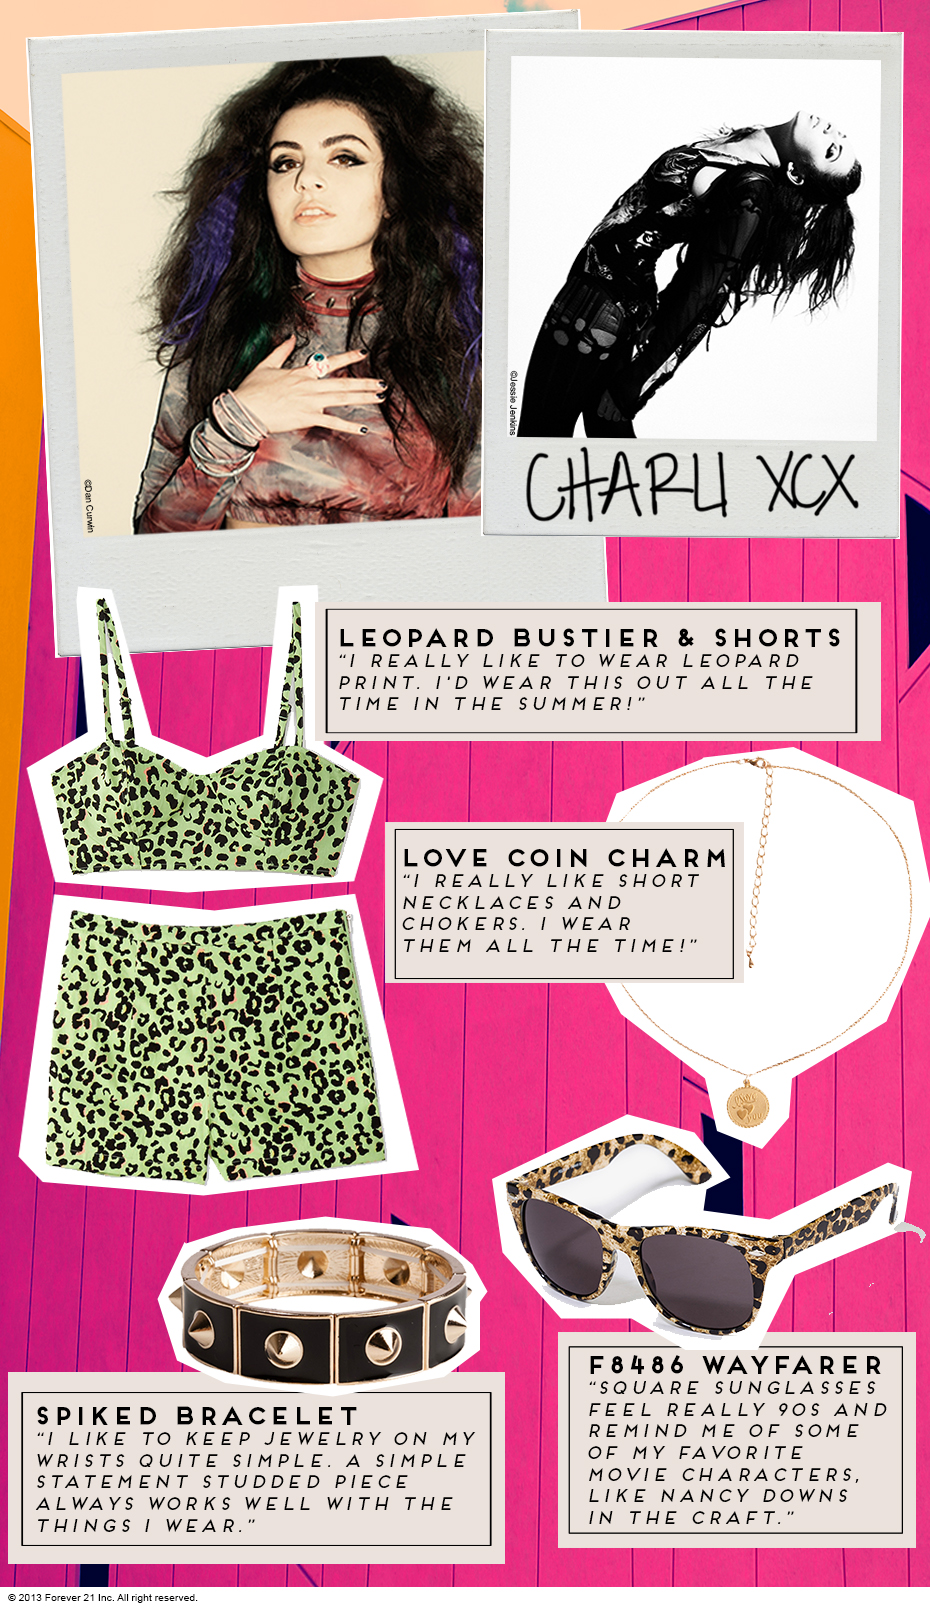 Inside the Wardrobe: Charli XCX's Top 4 Hits